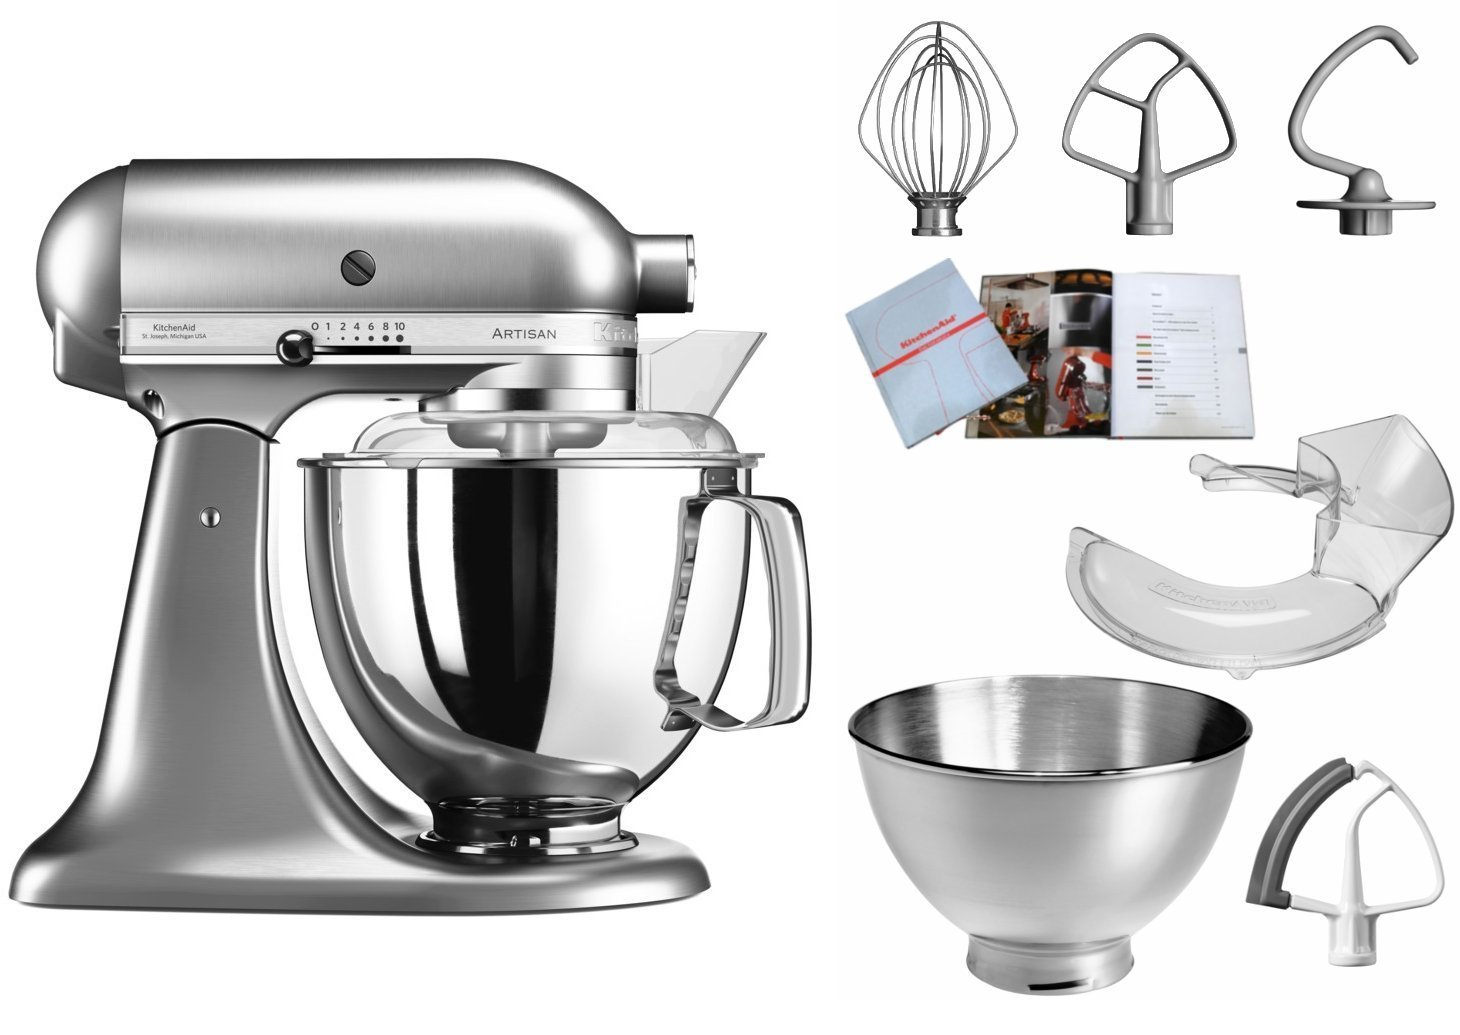 KitchenAid 5KSM175PSENK Metall gebürstet: Amazon.co.uk: Kitchen & Home